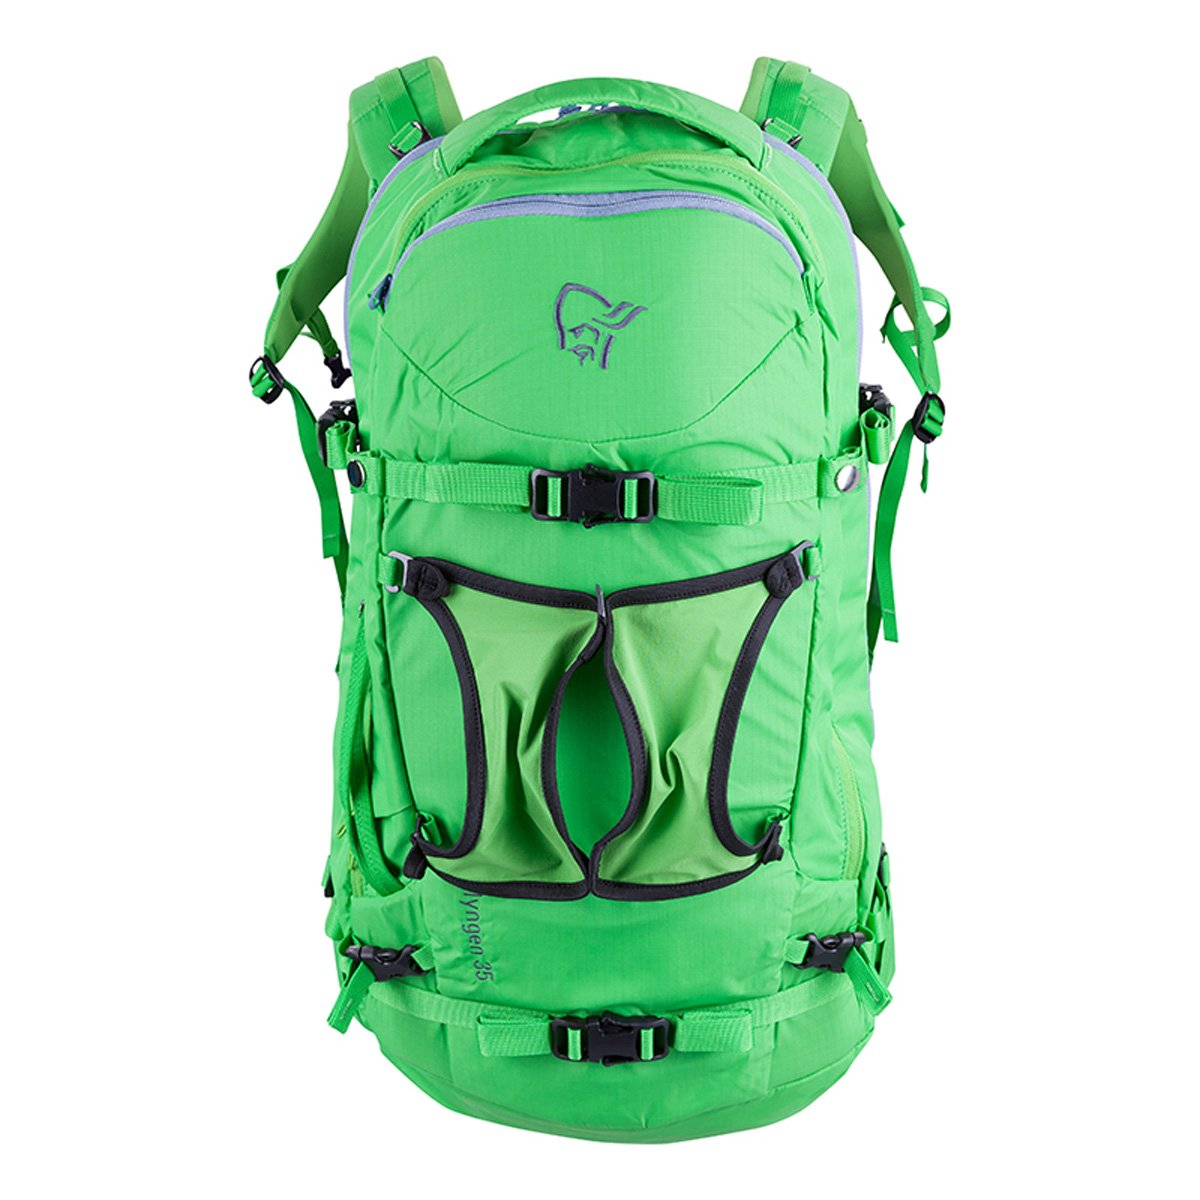 NORRONA(ノローナ) LYNGEN PACK35L 3290-15-7760  J Fever B01GM7FH98